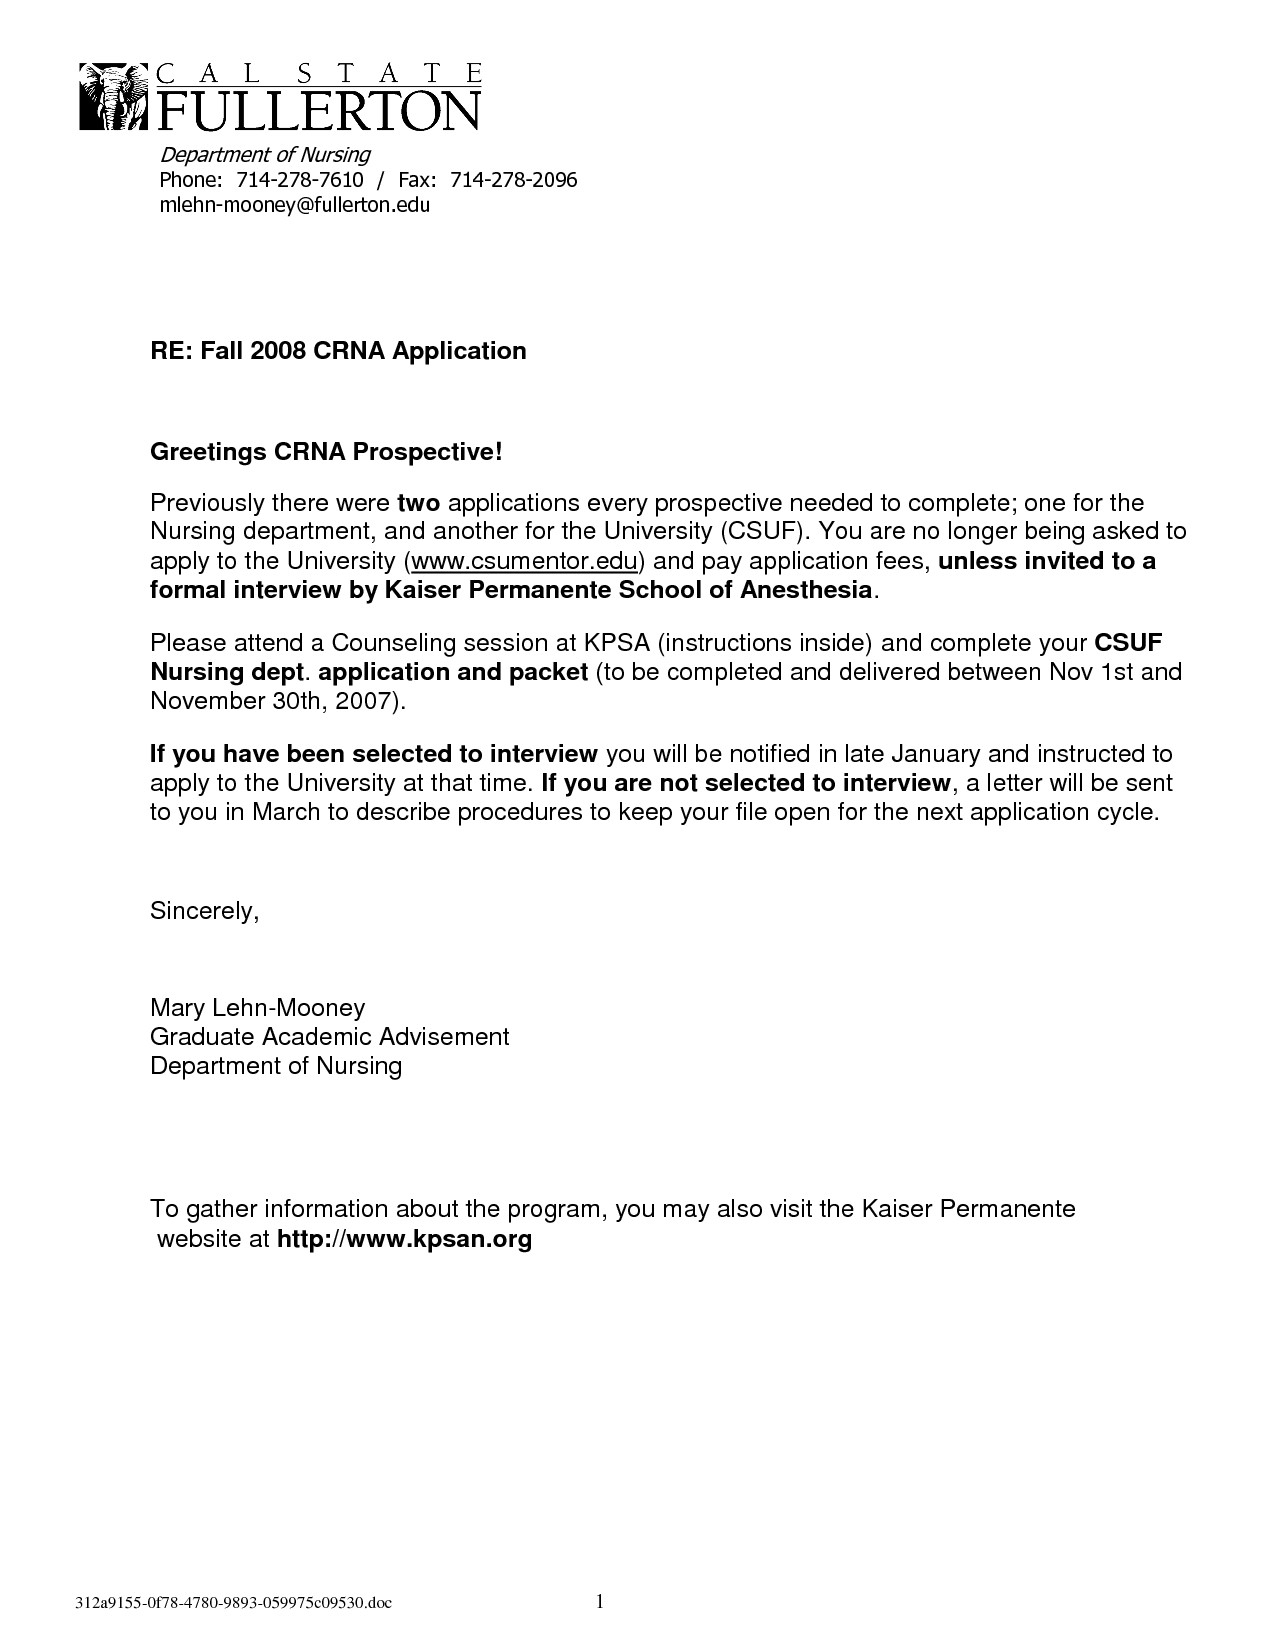 Exempt Offer Letter Template - Lindatellingtonjones Resume formats and Template Frees